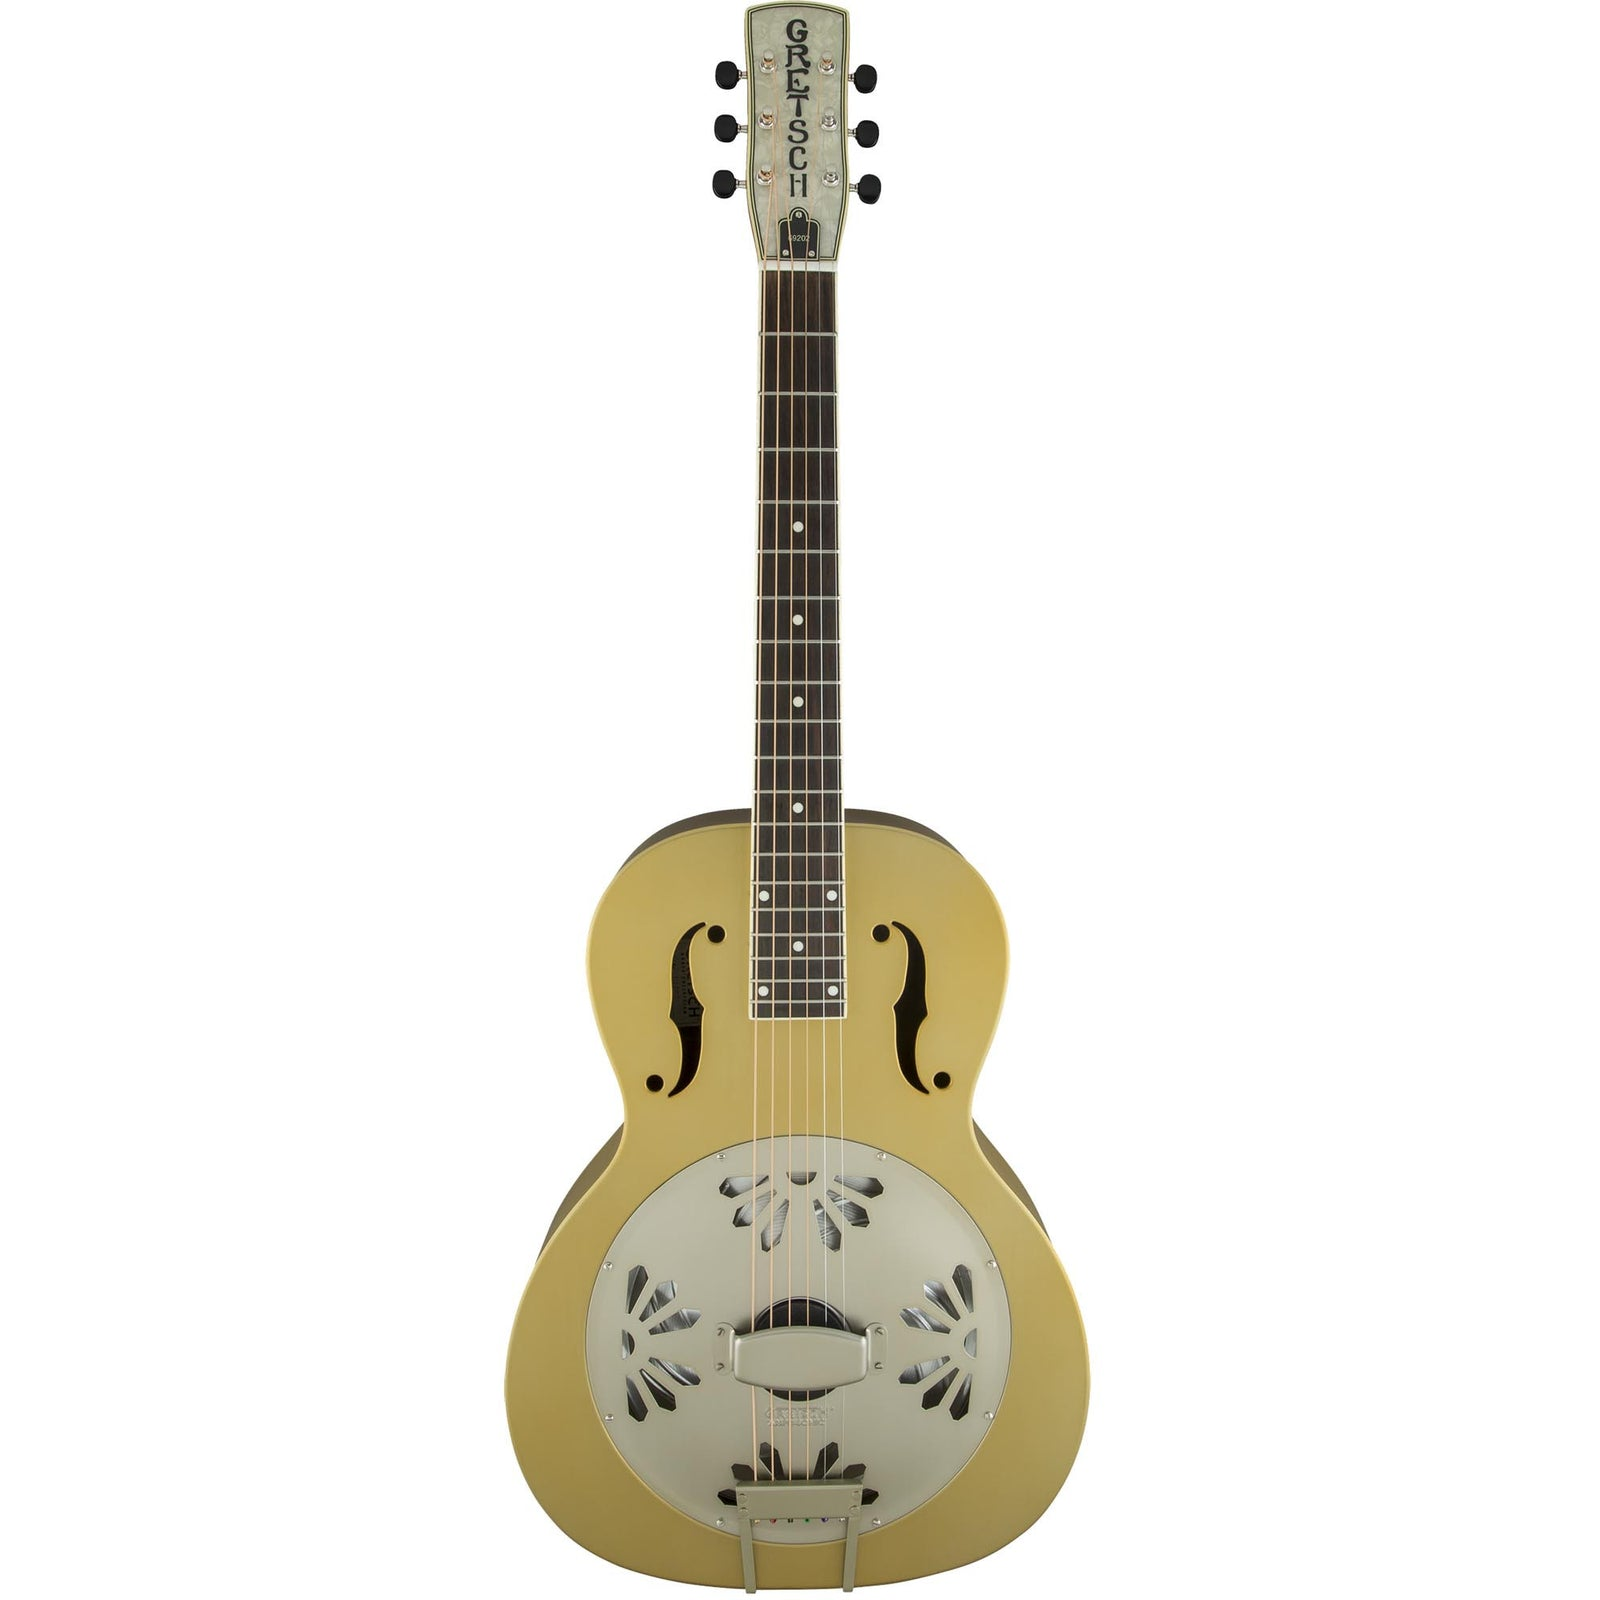 Gretsch Limited Edition G9202 Honey Dipper Special -  Resonator